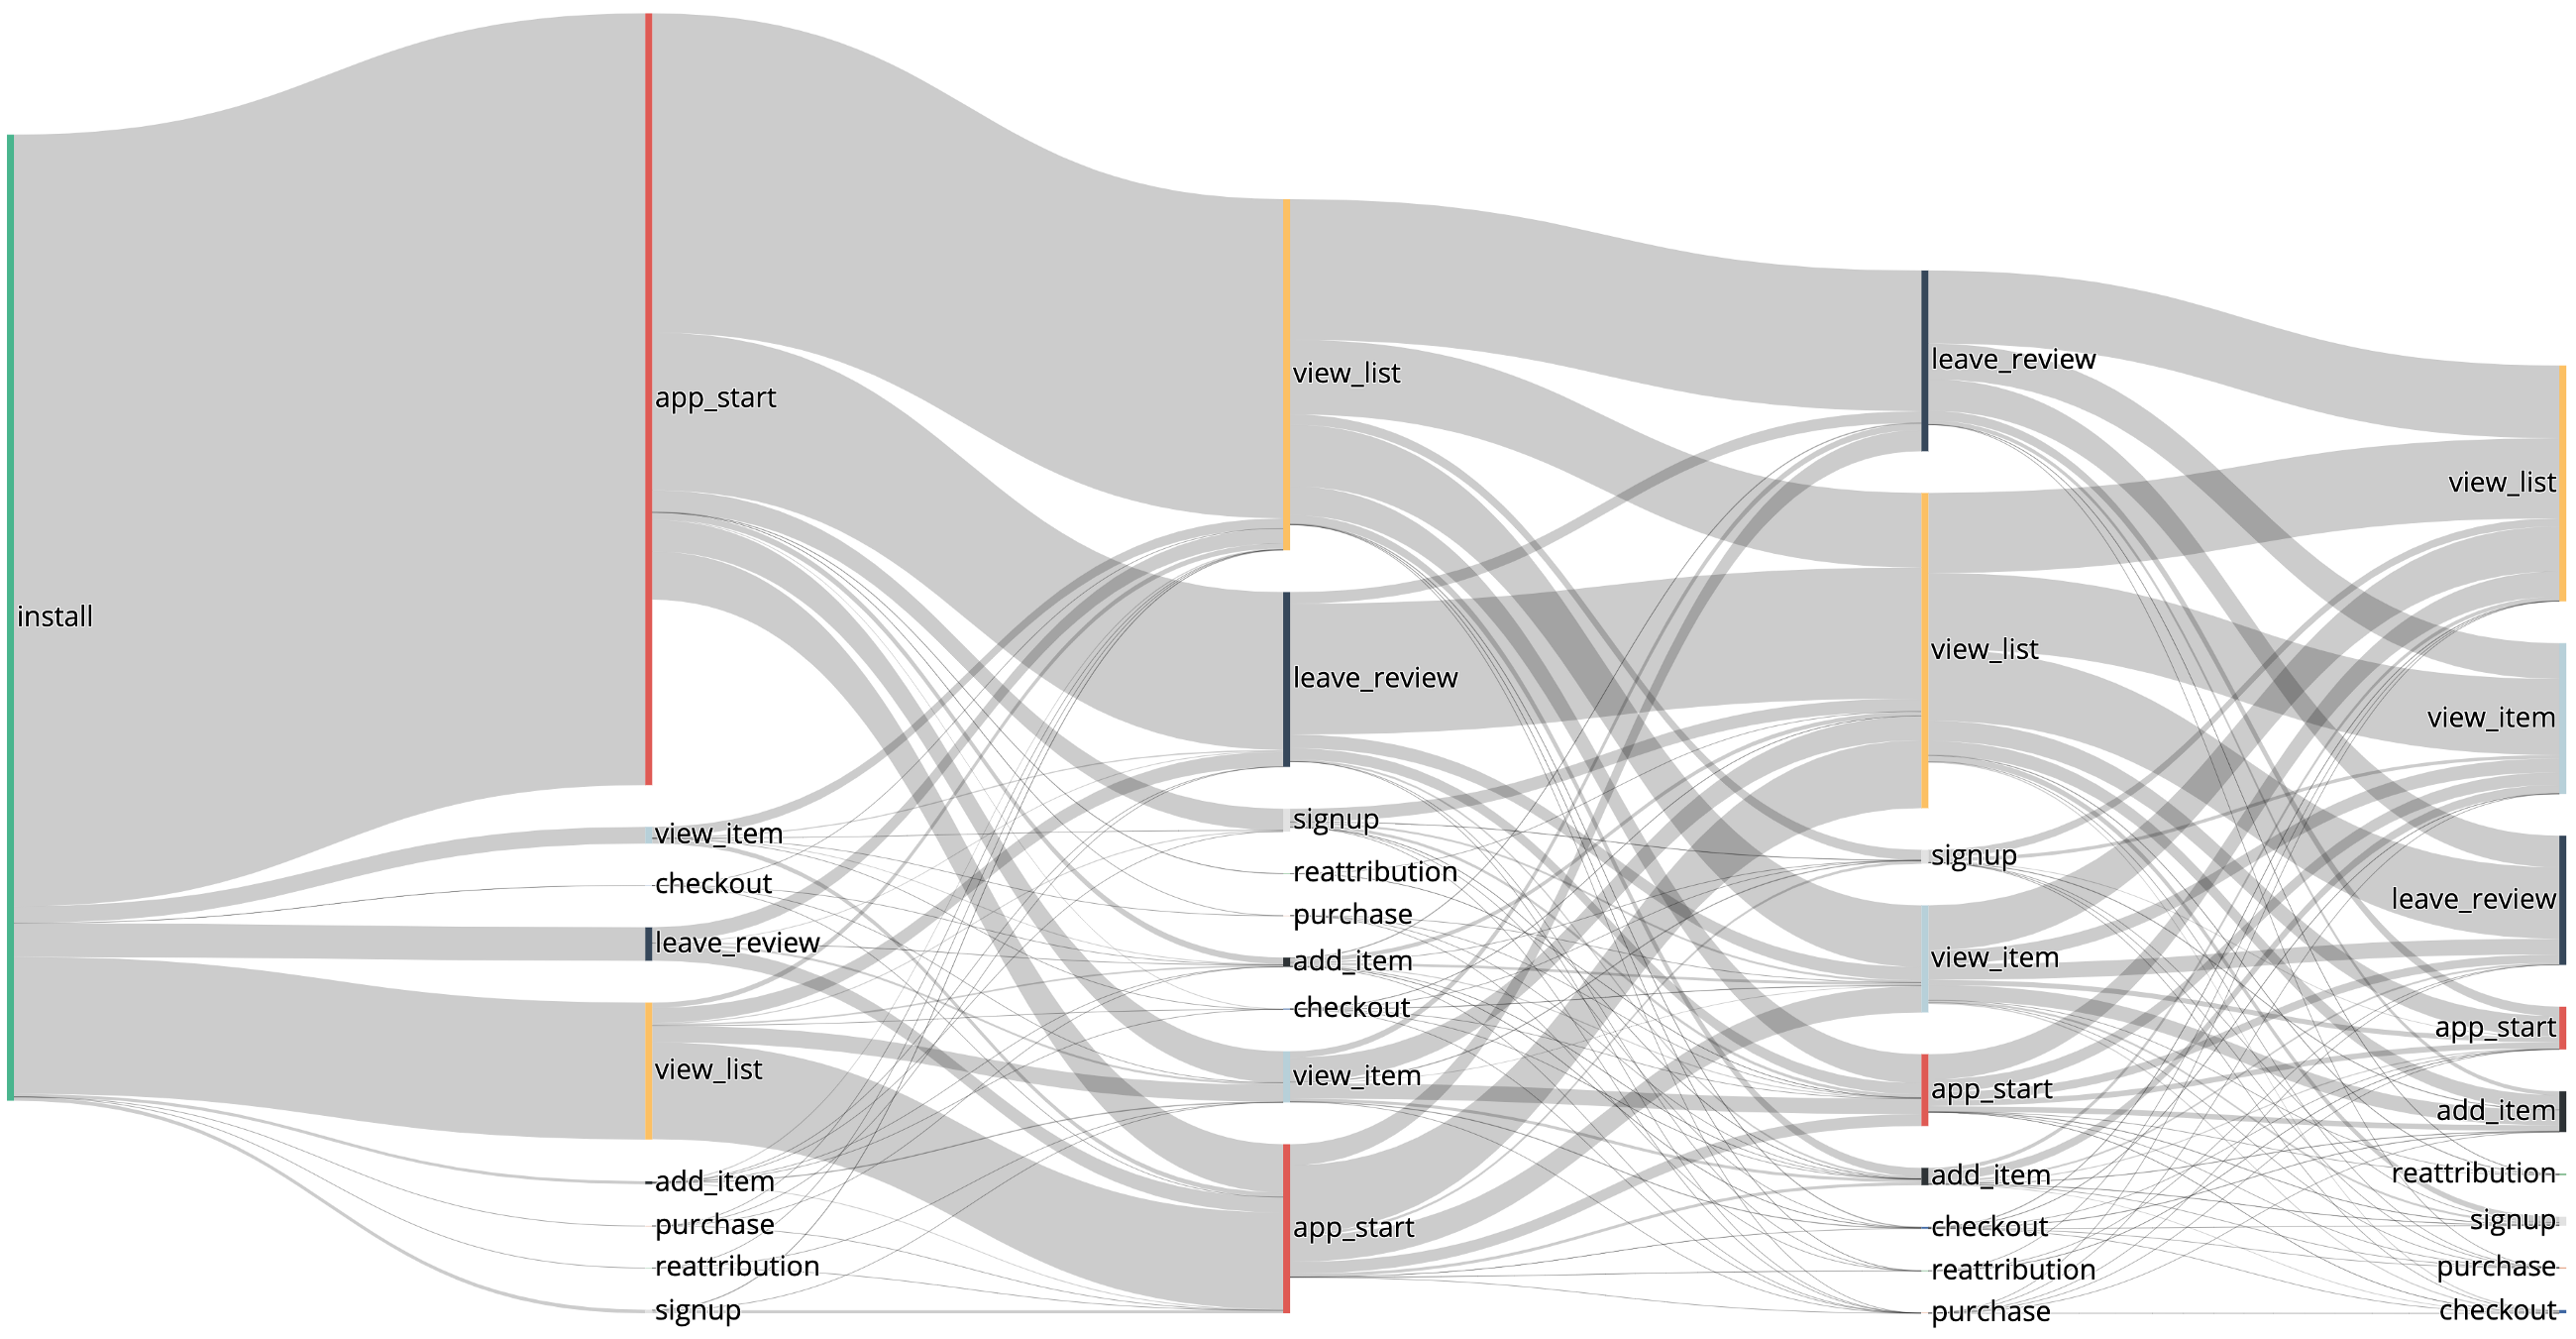 Advertising-Infographics-Visualizing-In-App-User-Journey-Using-Sankey-Diagrams Advertising Infographics : Visualizing In-App User Journey Using Sankey Diagrams In Python